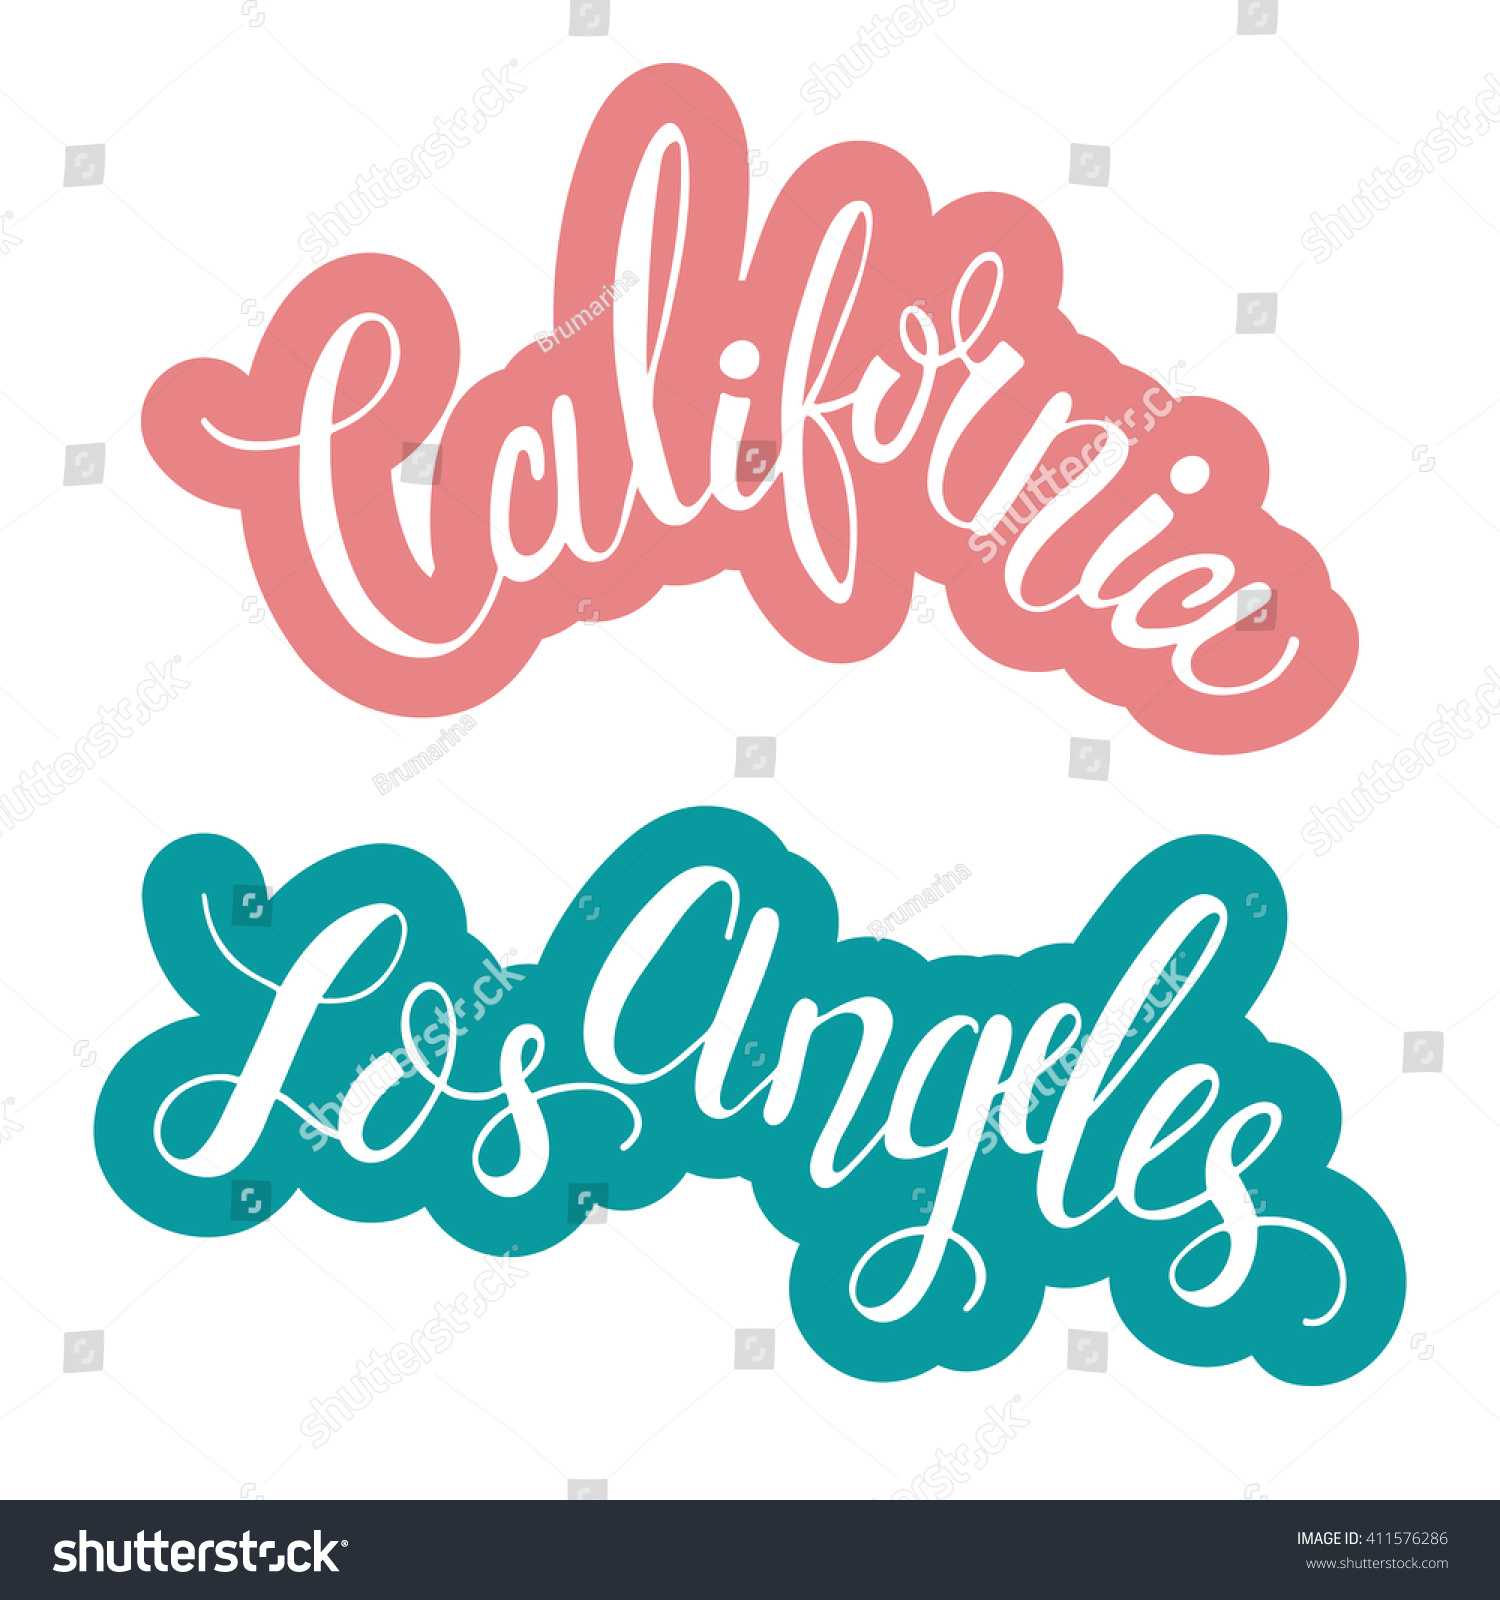 Design t shirts los angeles - Conceptual Hand Drawn Phrases California And Los Angeles Lettering Design For Posters T